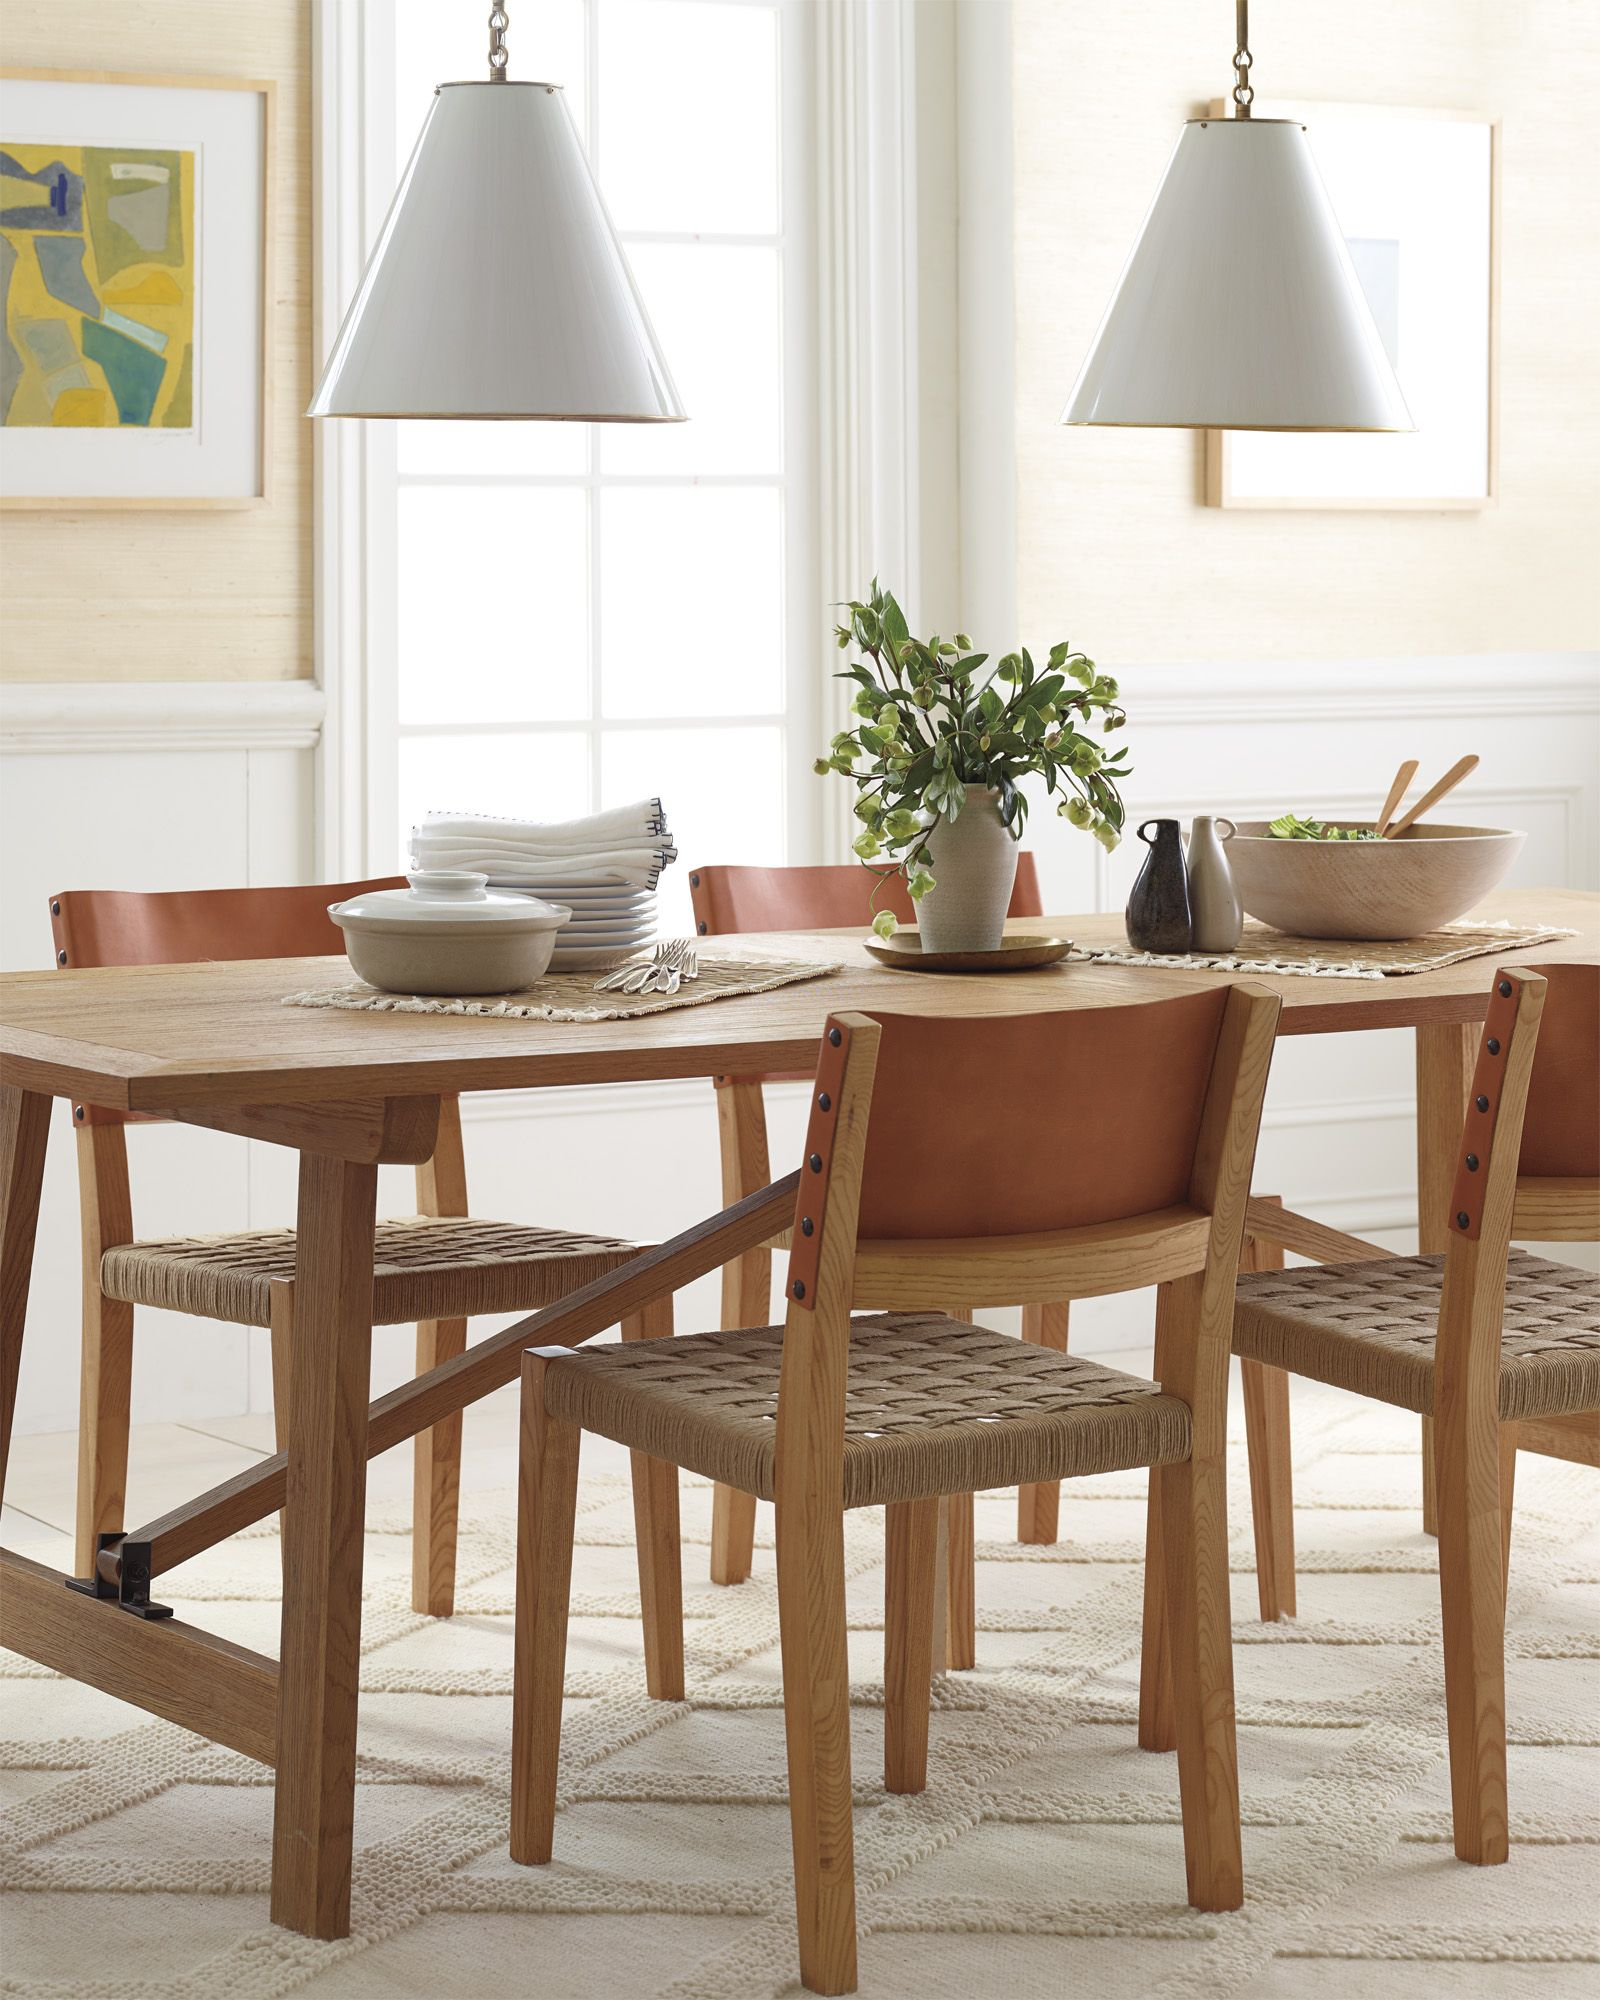 This Is Dining Room Inspiration We Love The Woven Chairs With Leather Back Textured Rug And Brass Light Pendants